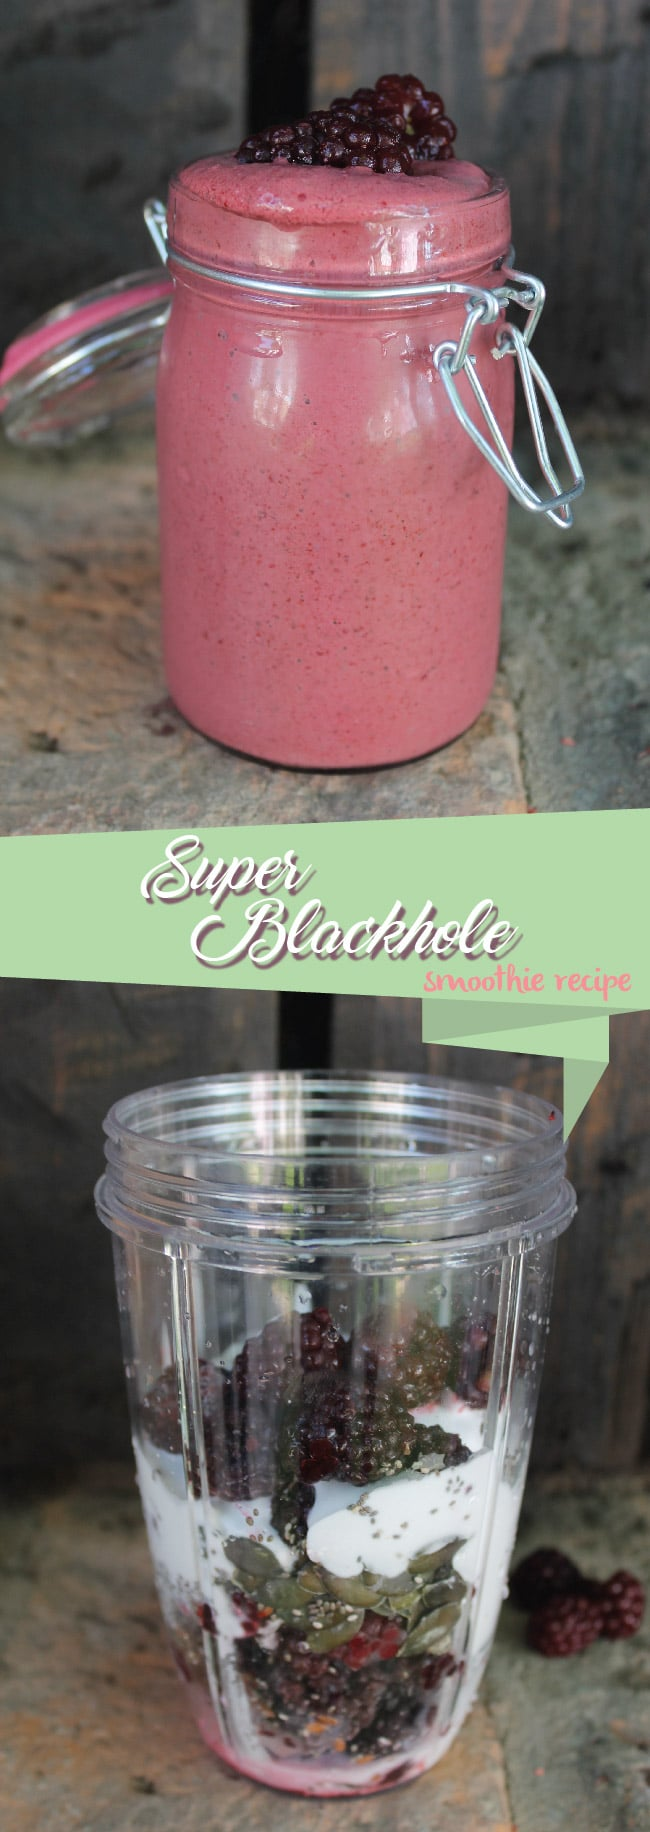 10 Cosmic Health Shakes - The Healthiest Low Carb Smoothie Recipes In The Universe - Super Blackhole